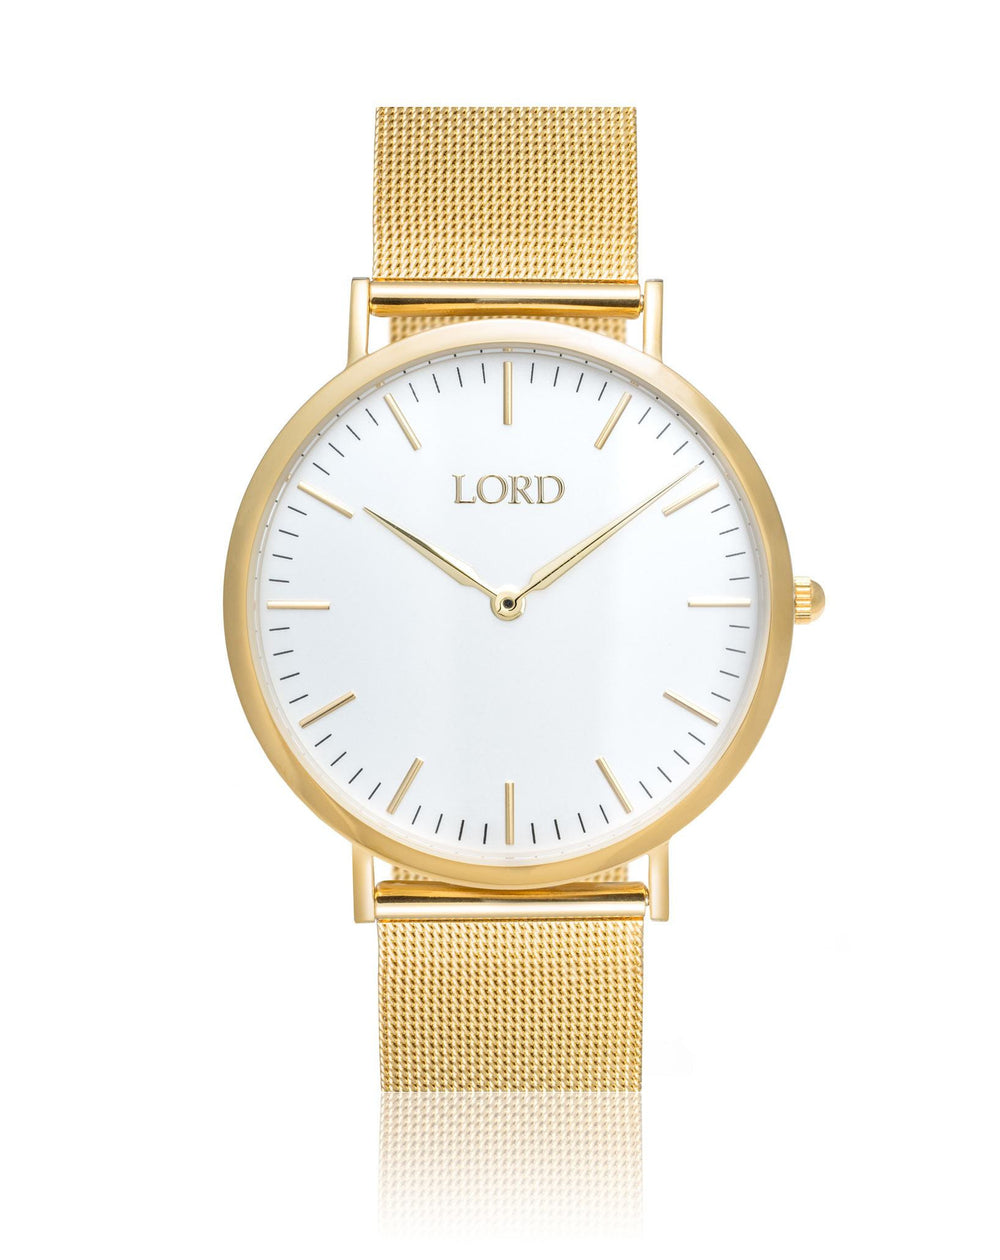 Classic-Gold-Watch-Classic-Men's-Watches-Lord-Timepieces